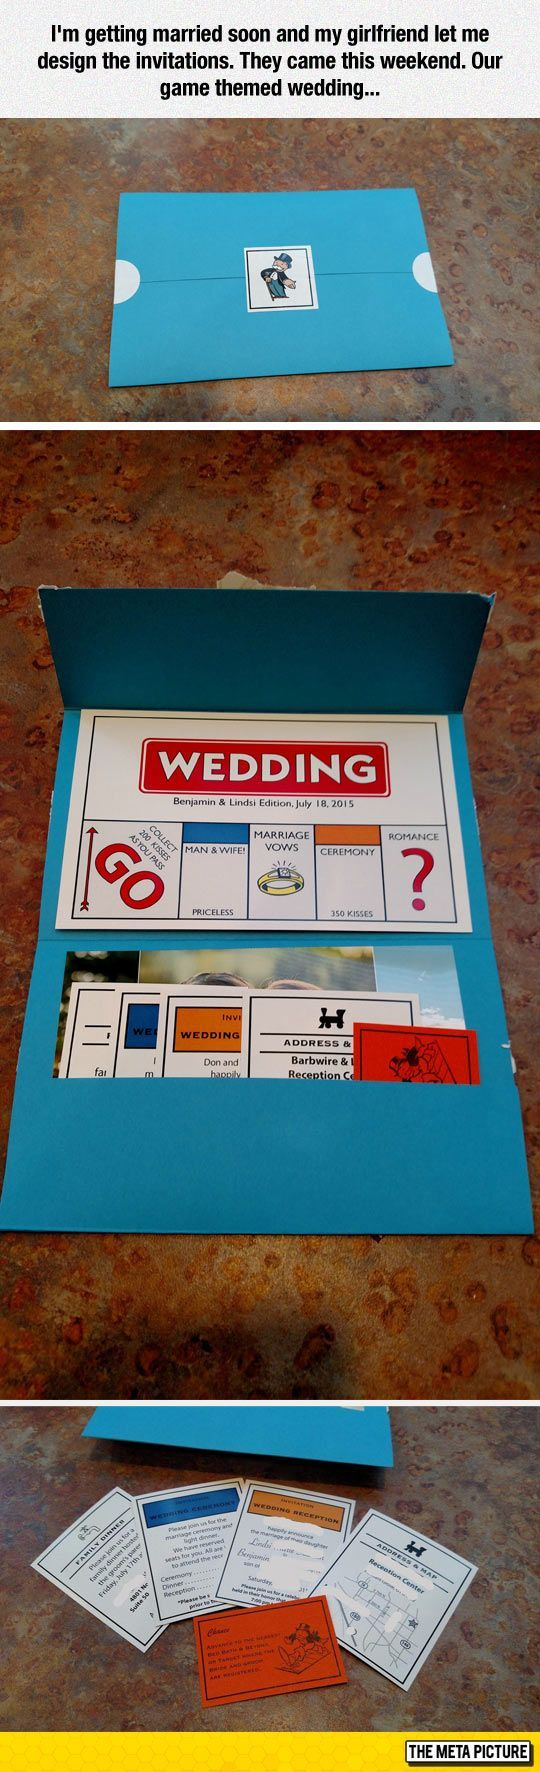 funny wedding invitation rsvp goes viral%0A Funny pictures about Game Themed Wedding Invitations  Oh  and cool pics  about Game Themed Wedding Invitations  Also  Game Themed Wedding Invitations  photos